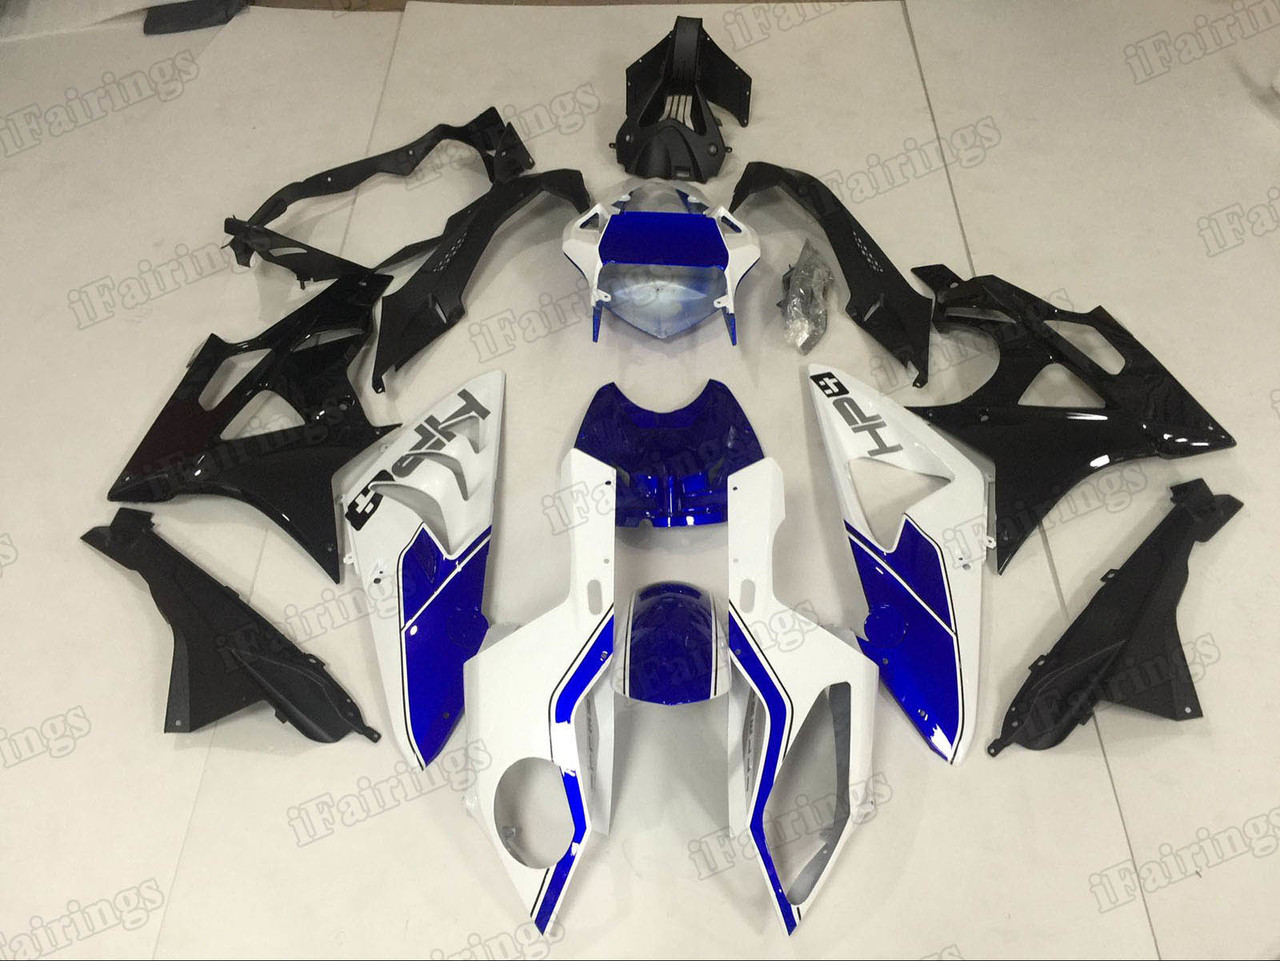 2009 2010 2011 2012 2013 2014 BMW S1000RR aftermarket fairings.